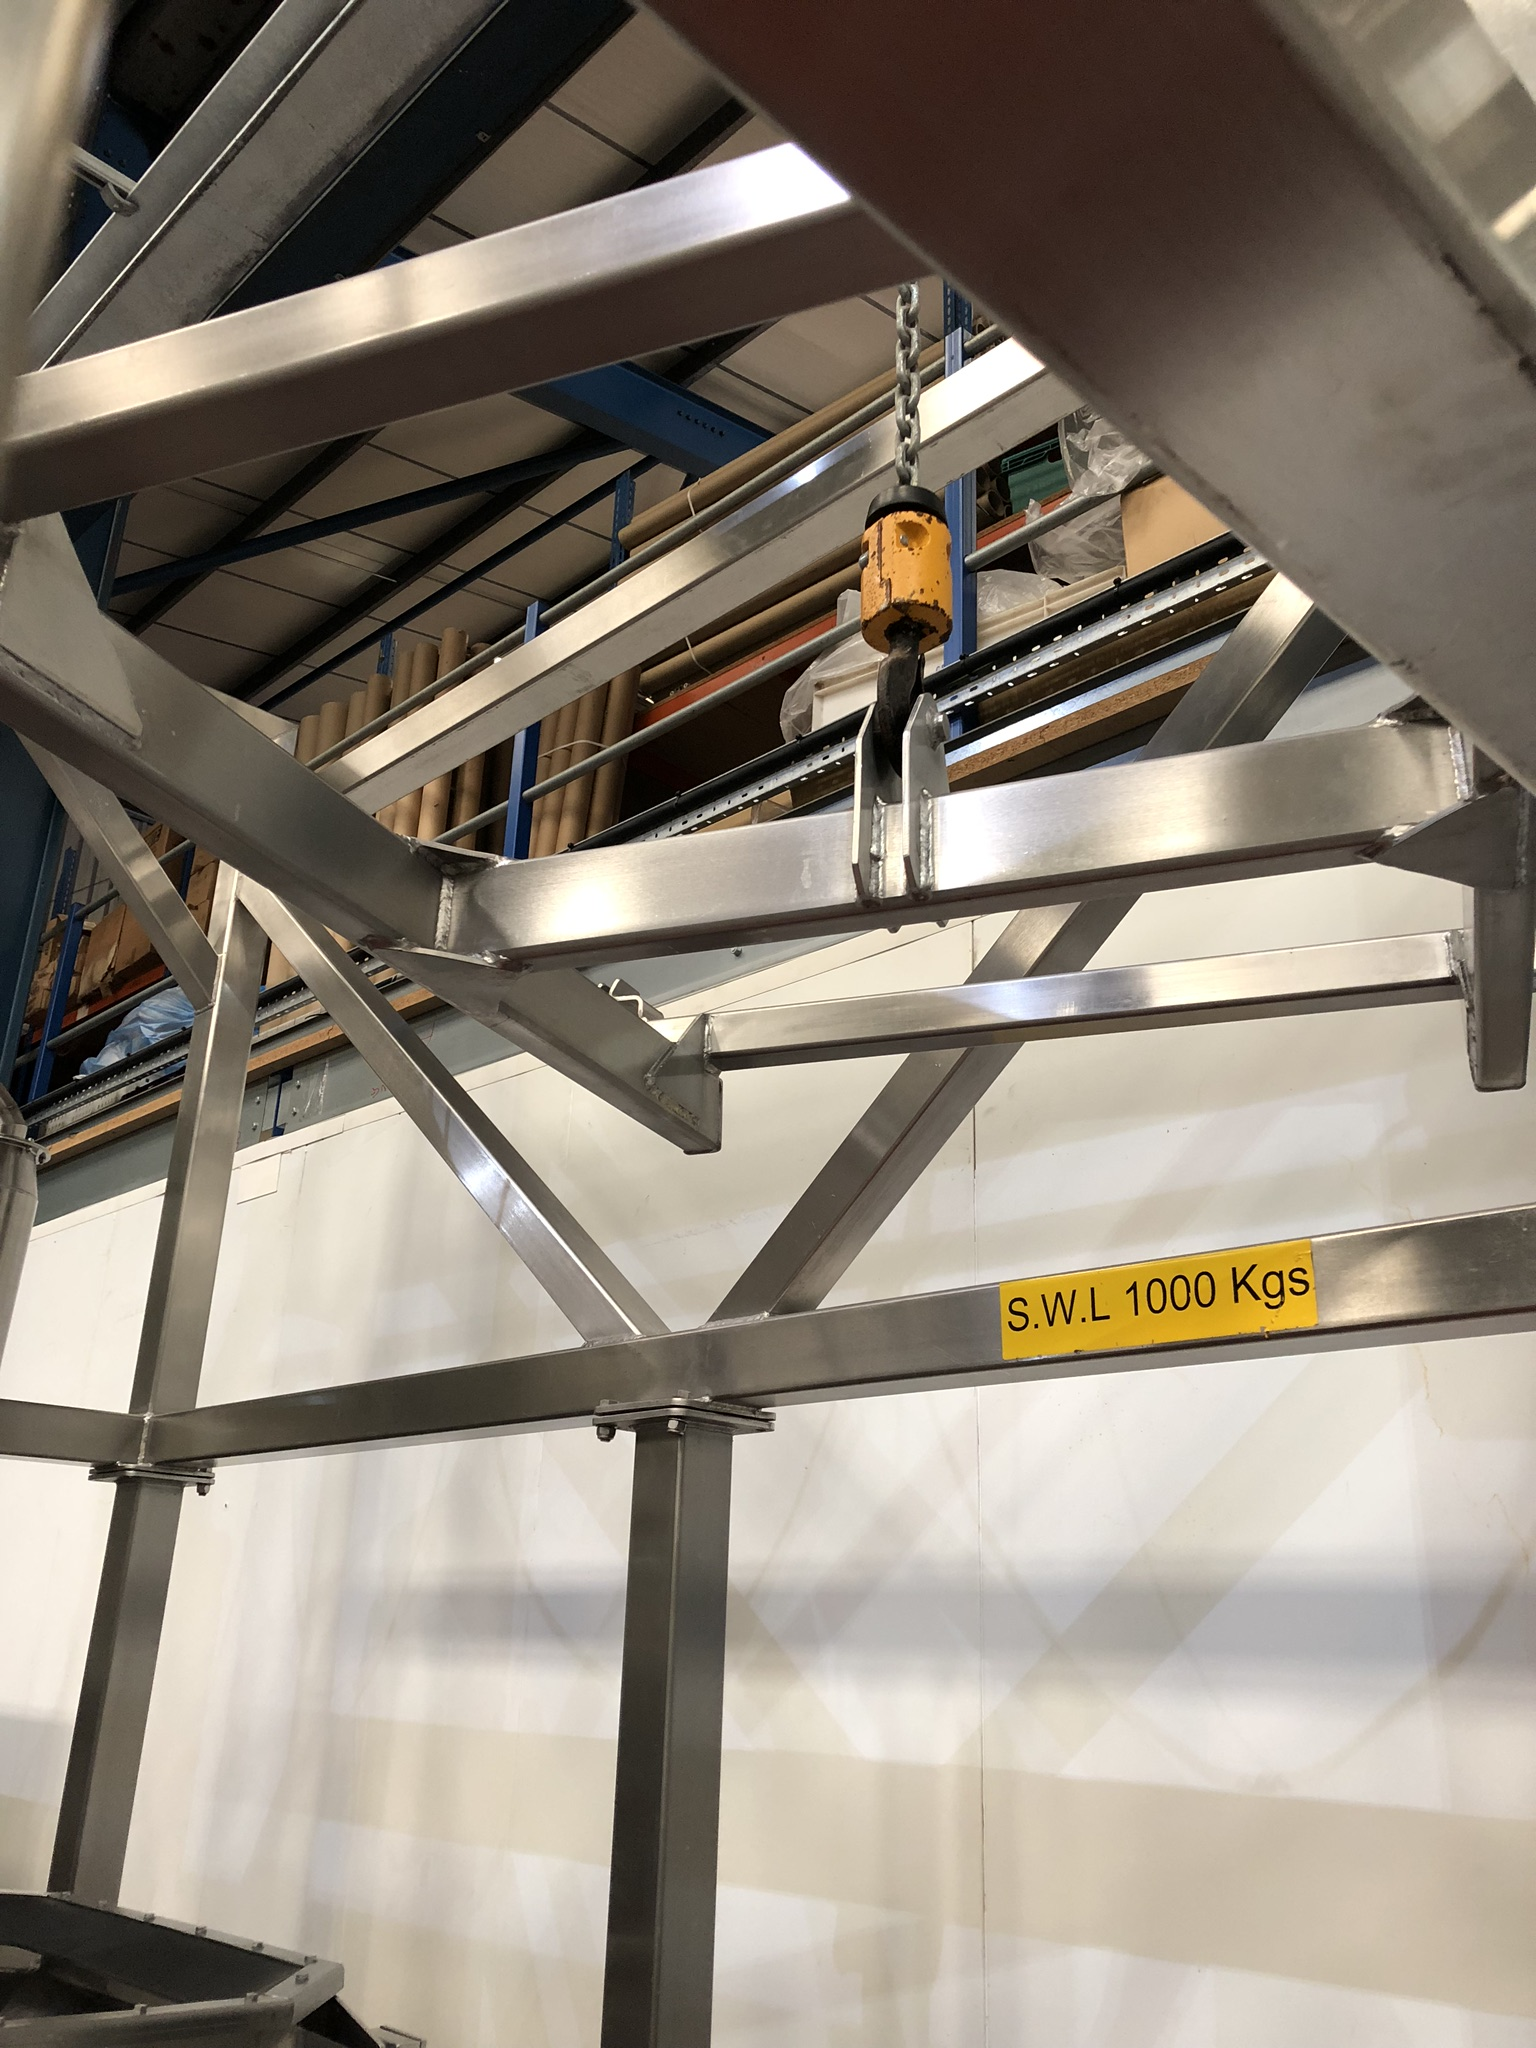 Guttridge 1000KG BULK BAG UNLOADING SYSTEM, with Star Liftket electric chain hoist, lift out - Image 8 of 8